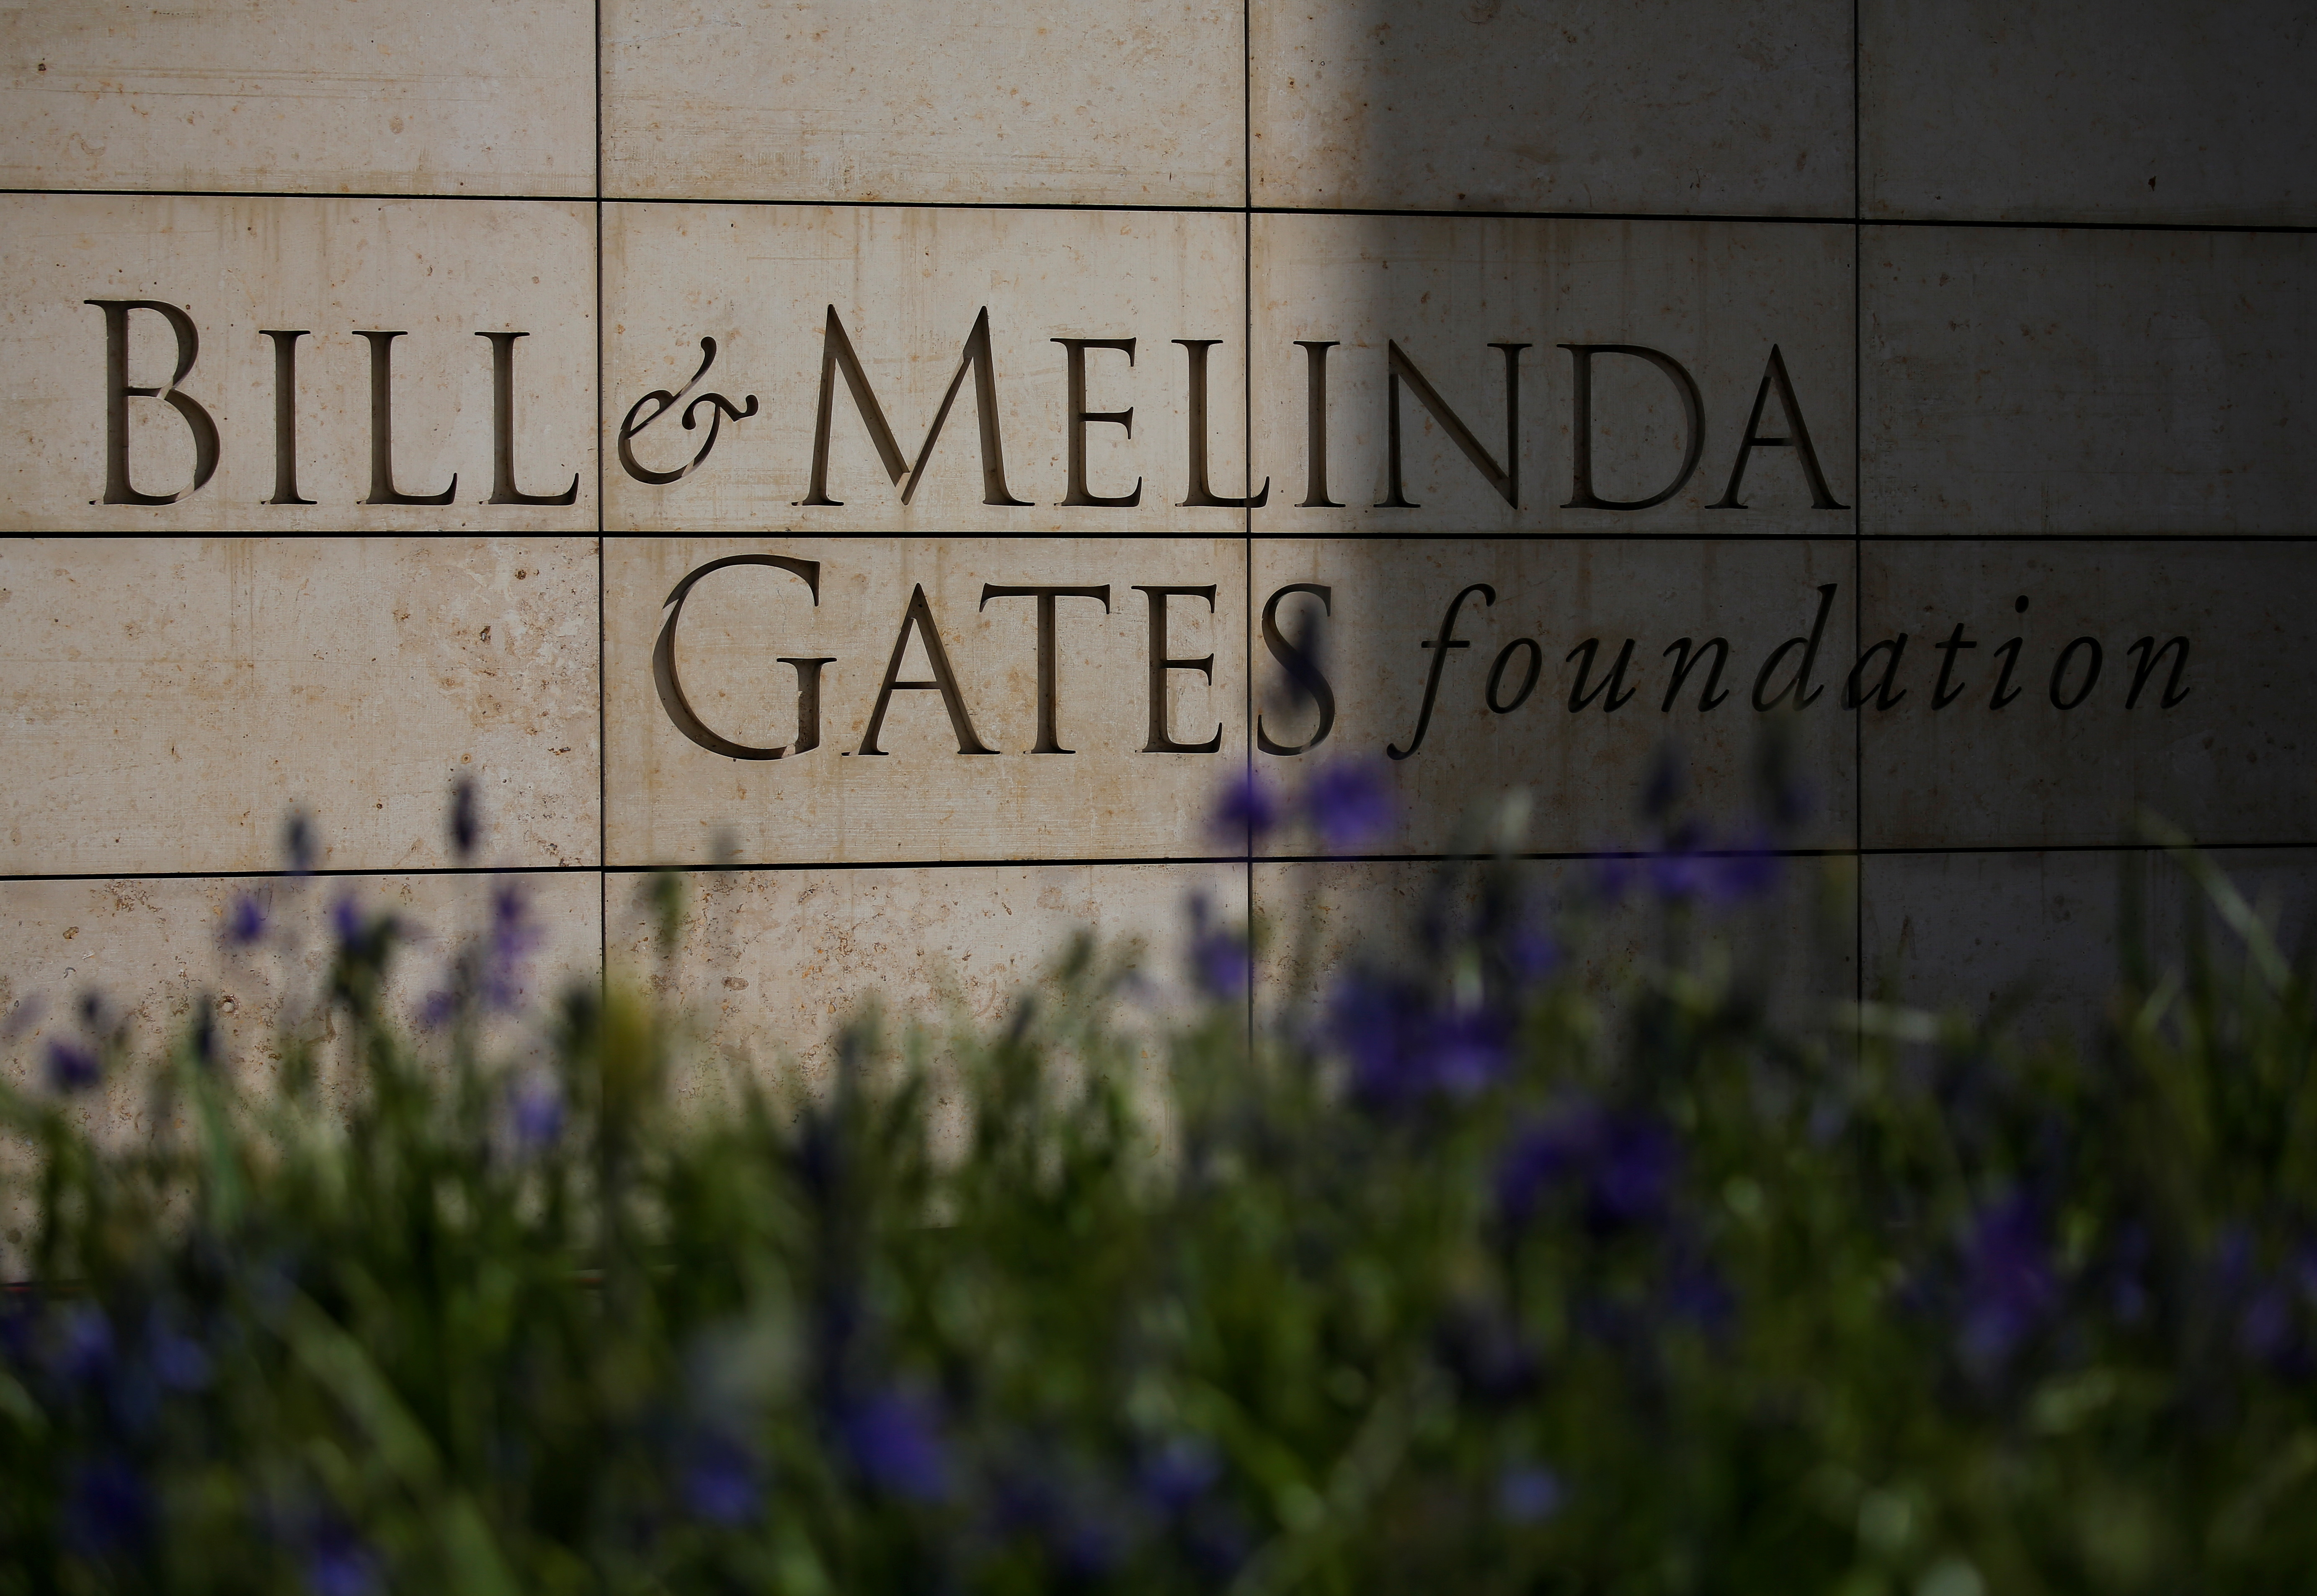 The Bill & Melinda Gates Foundation campus is pictured in Seattle, Washington, U.S. May 5, 2021.  REUTERS/Lindsey Wasson